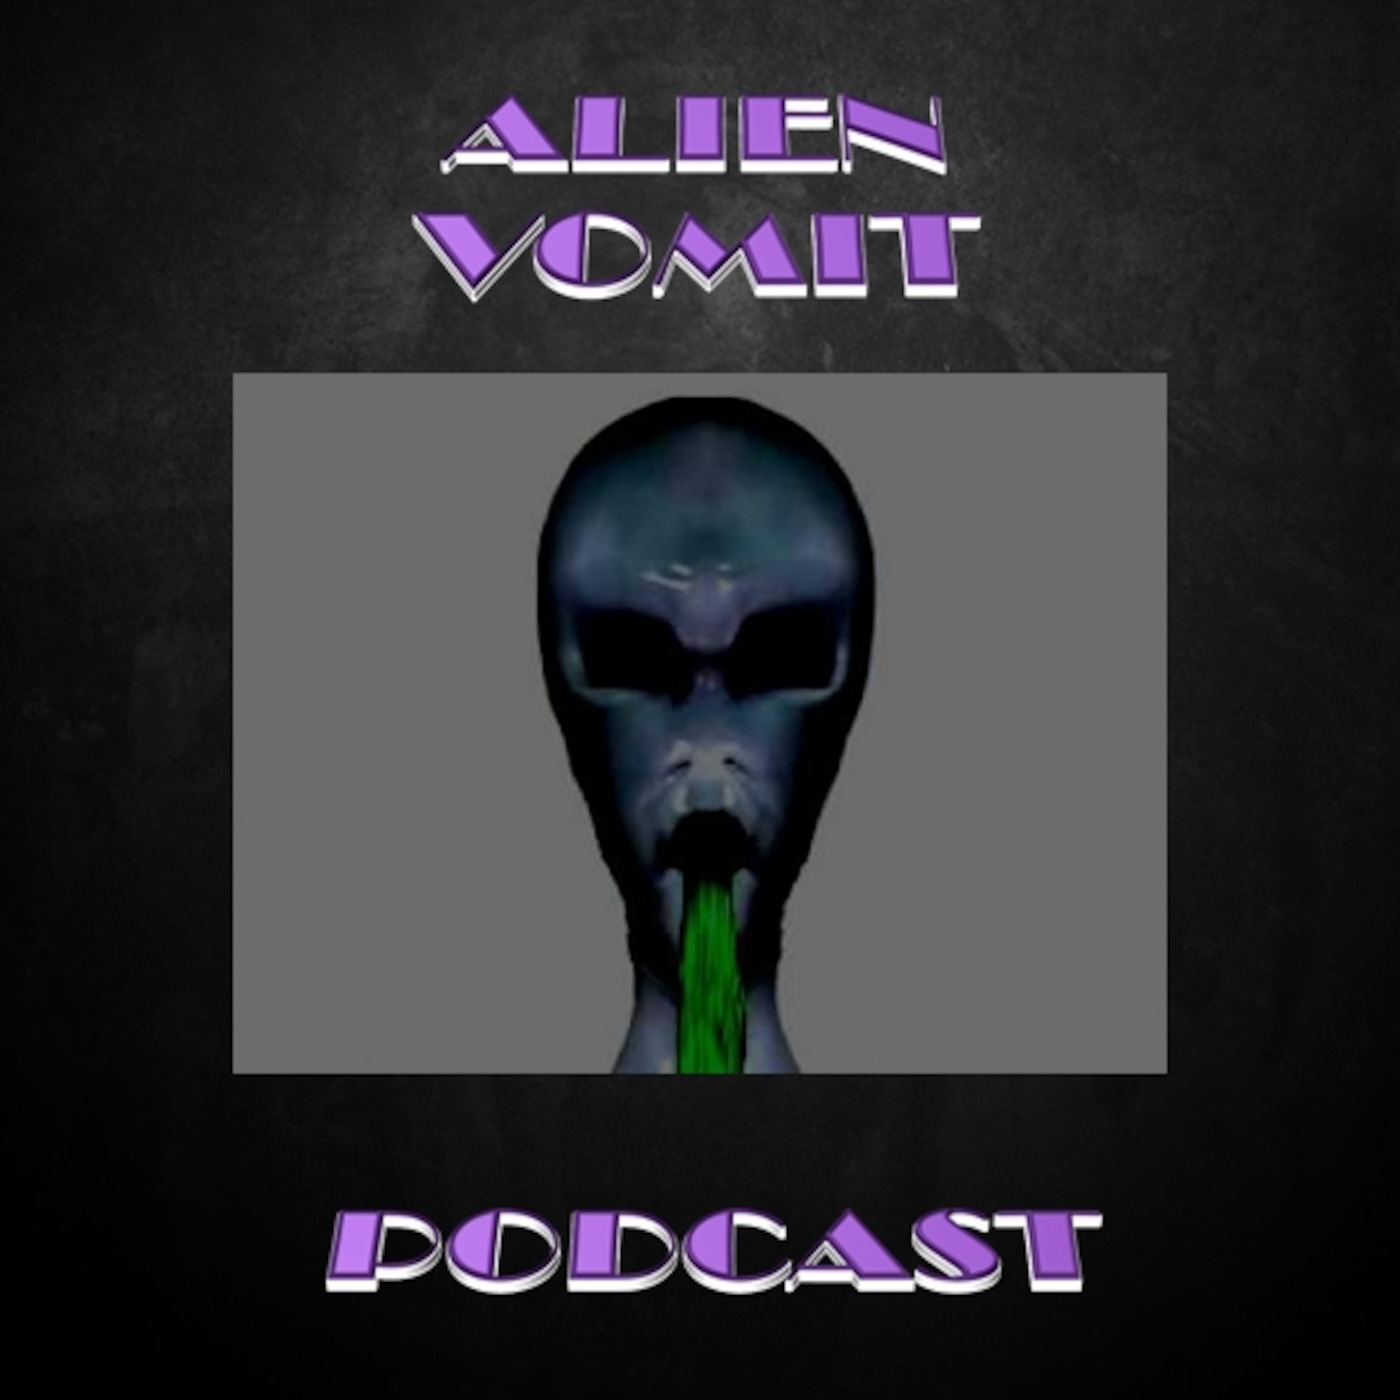 Alien Vomit's Podcast